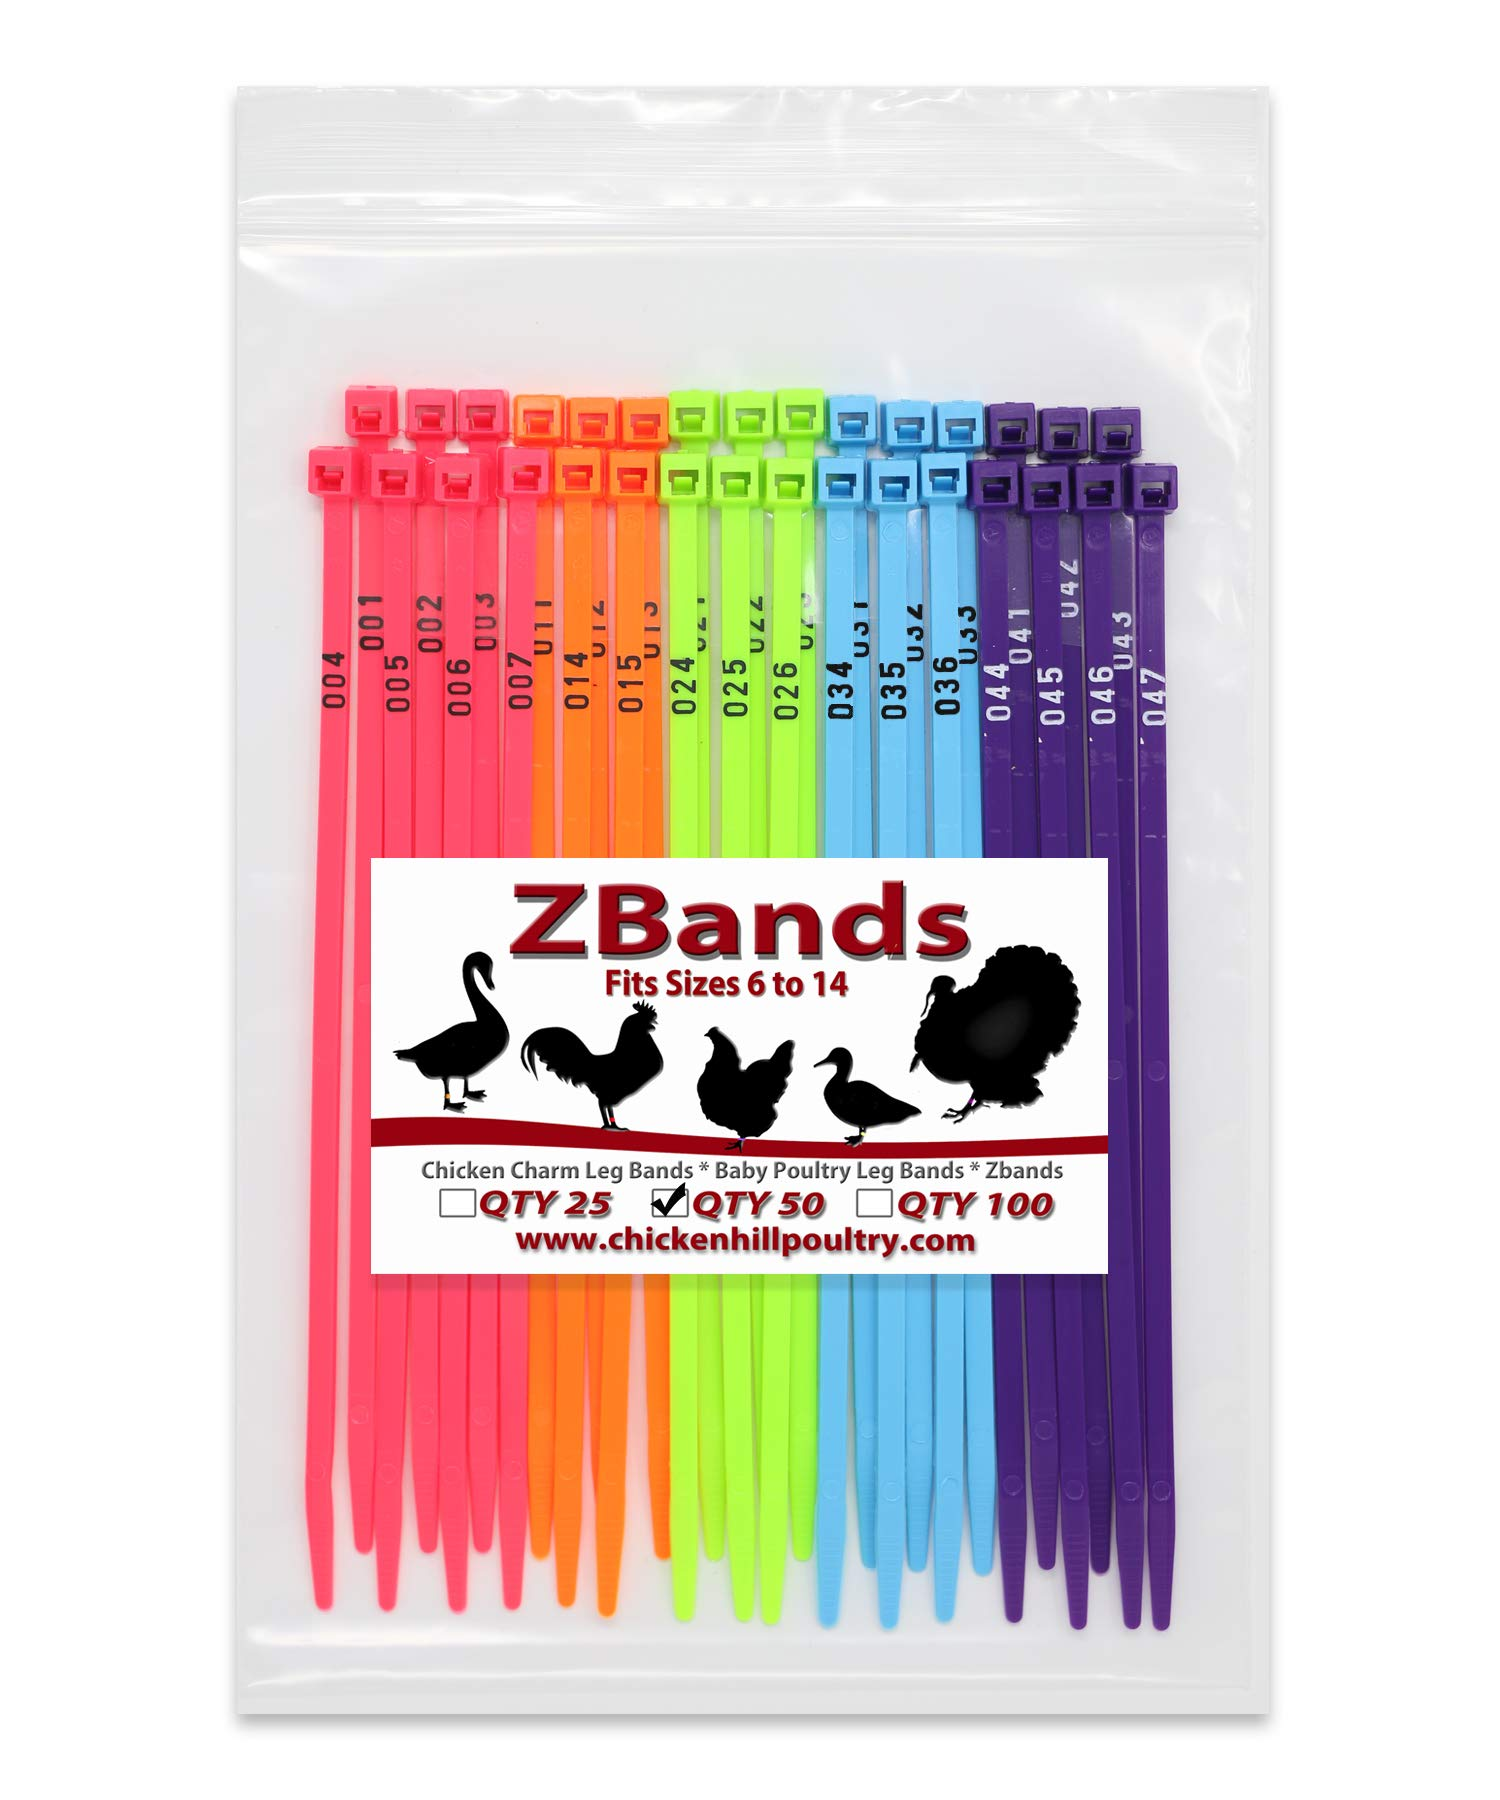 Chicken Hill 50 ZBand Numbered Poultry Leg Bands Fluorescent ~ Fits Sizes 6 to 14 by Chicken Hill